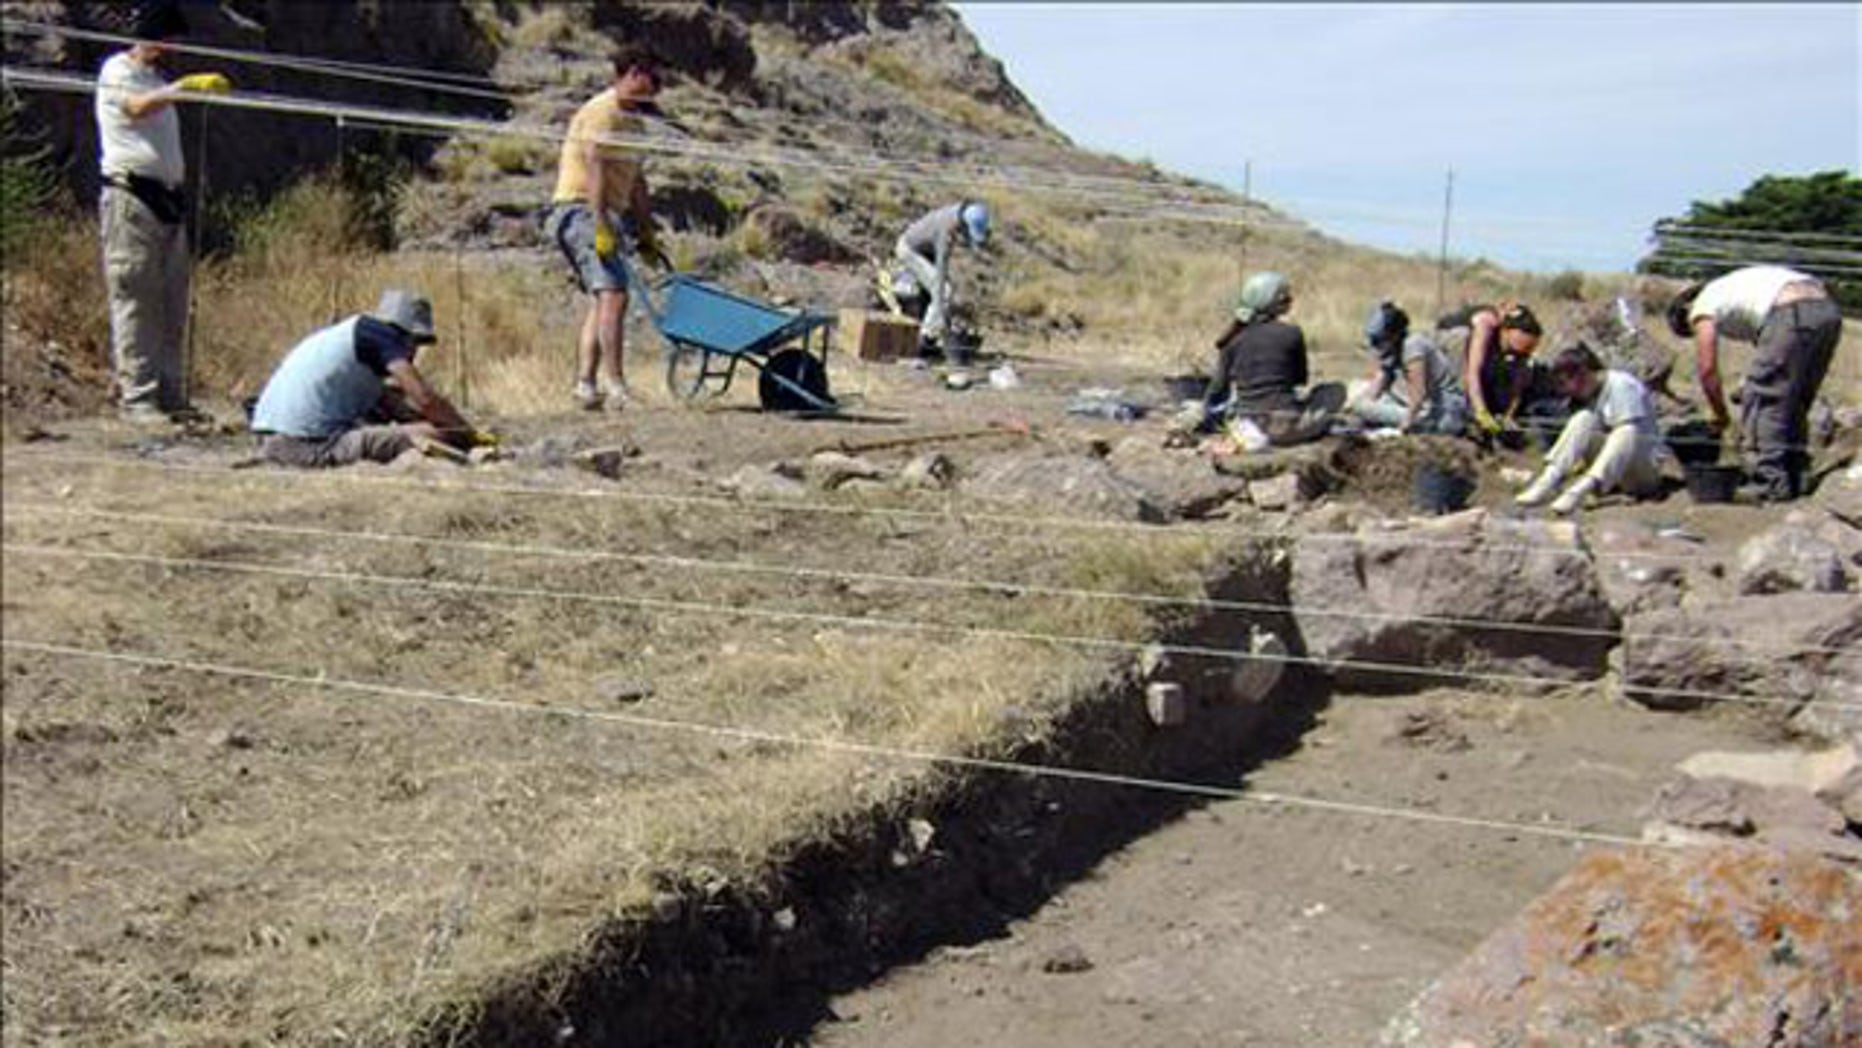 Argentine anthropologists search a lakeside beach, where they found human skeletal remains some 8,270 years old.